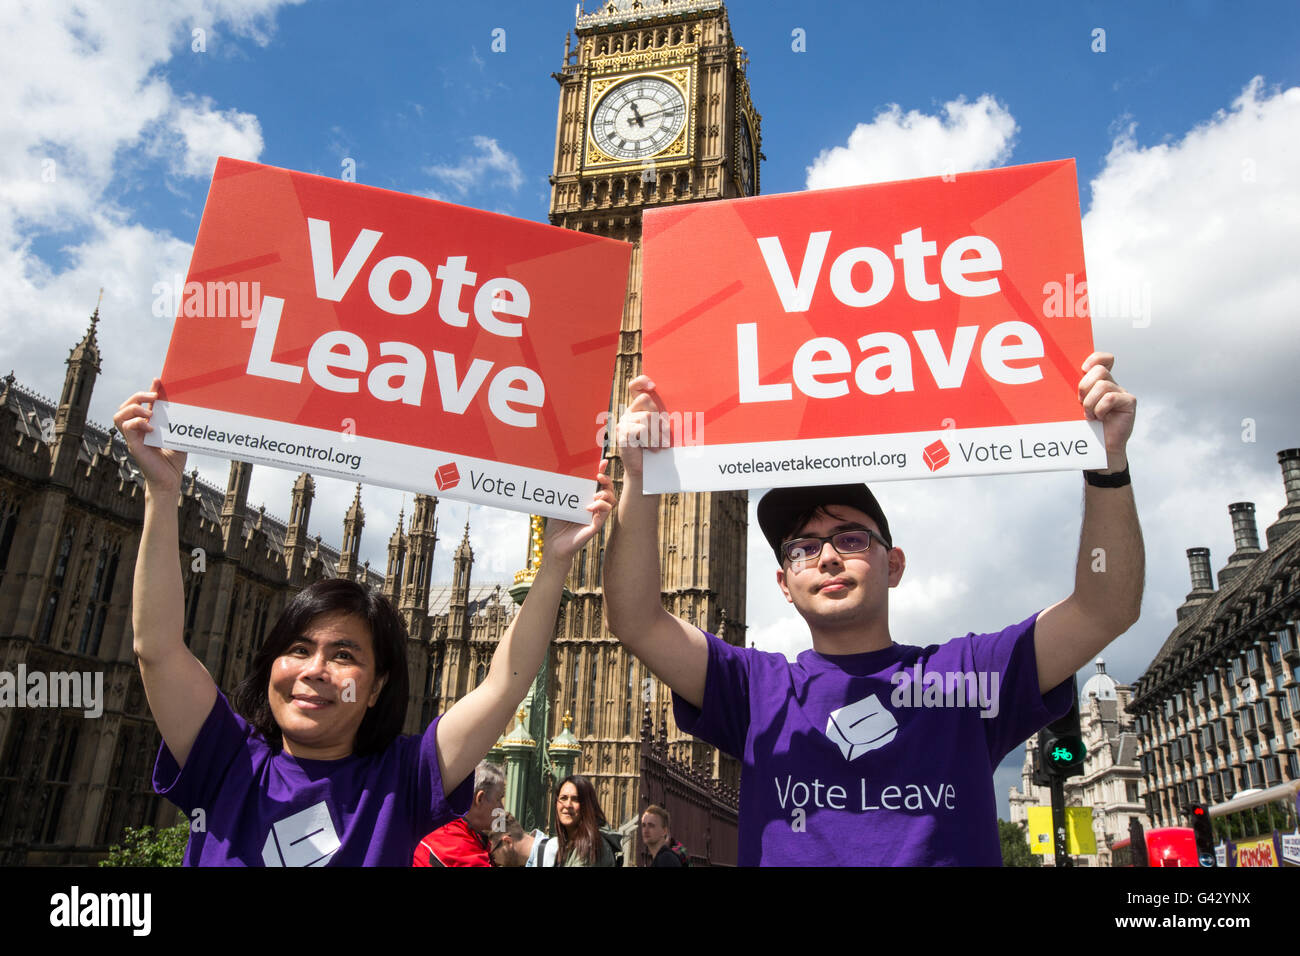 Supporters of the 'Vote leave' campaign on Westminster Bridge to leave the EU on June 23rd - Stock Image